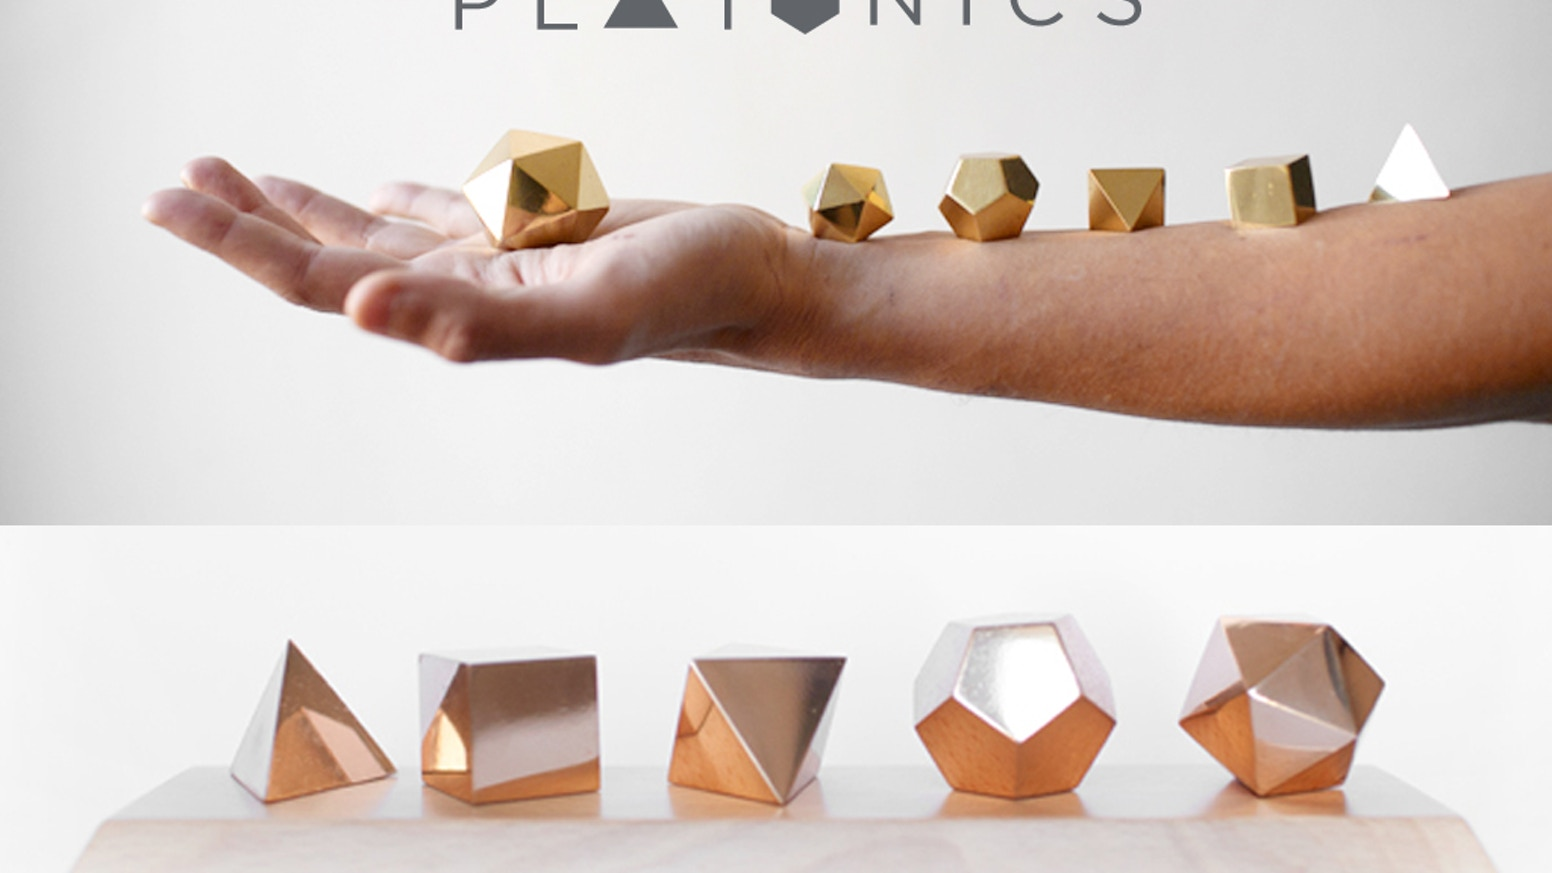 New Platonic Solids cast in brass and bronze. The five solids that shape the world. 2500 years of history in the palm of your hand.